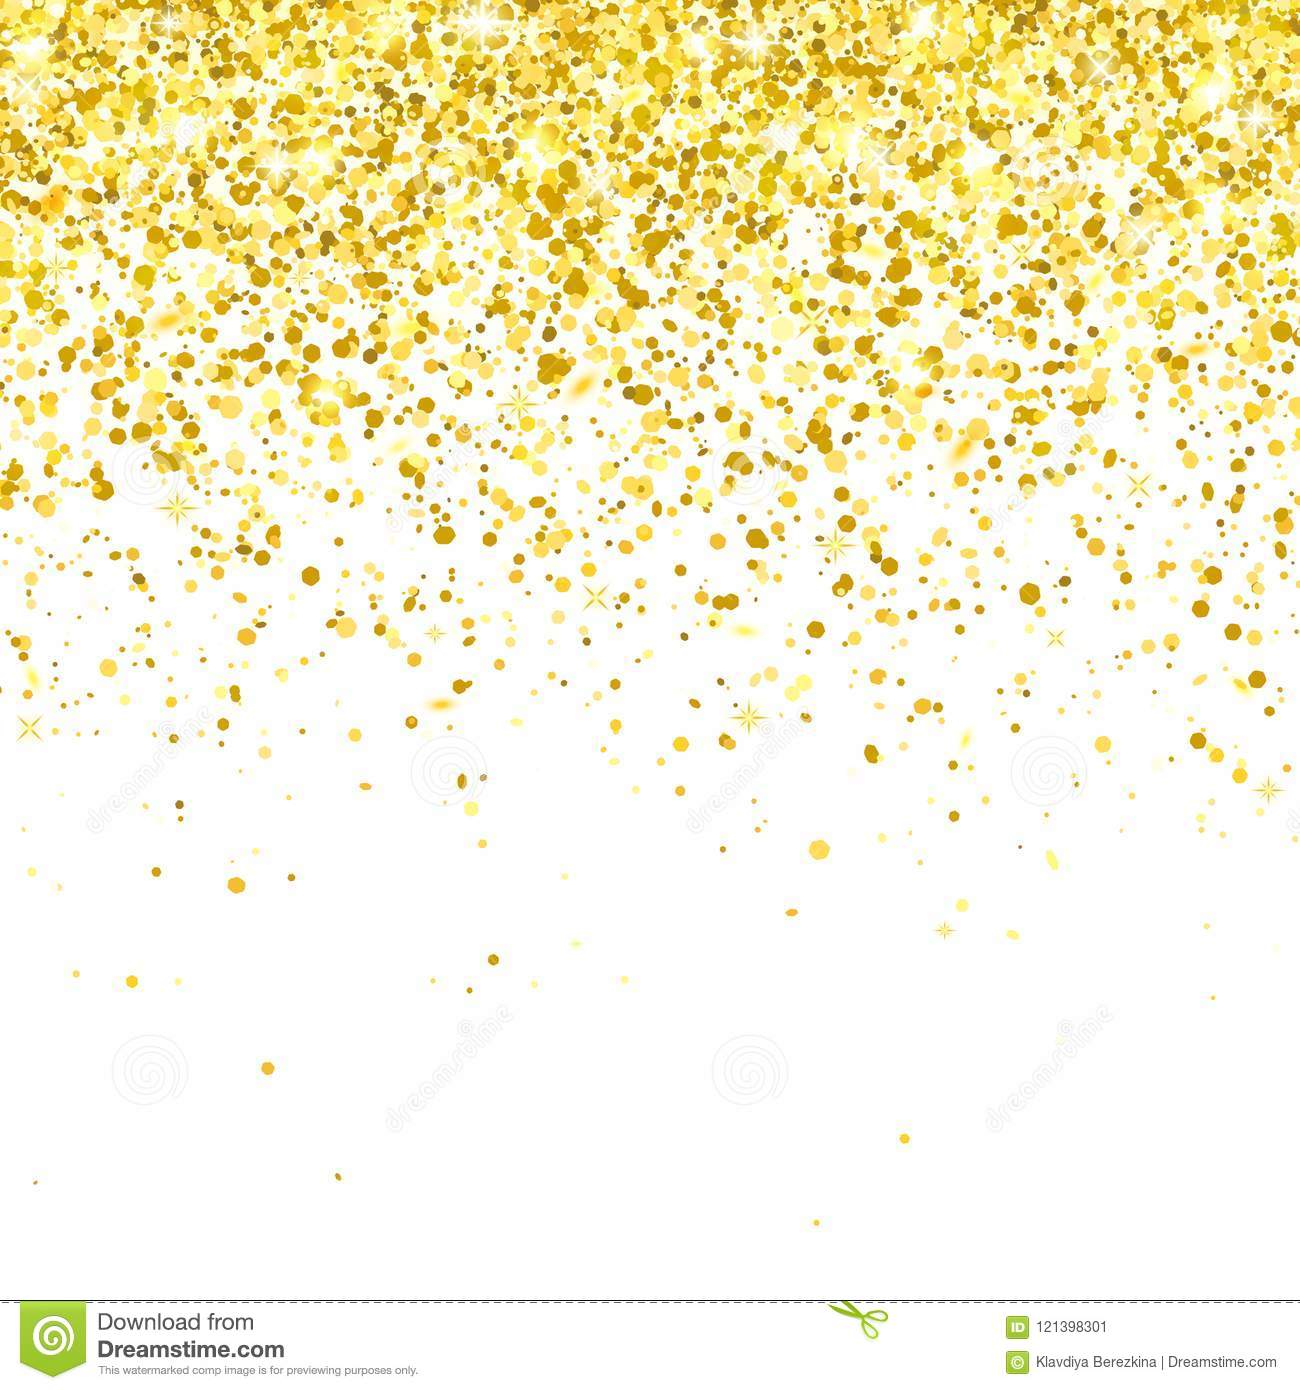 gold glitter falling particles on white background  vector